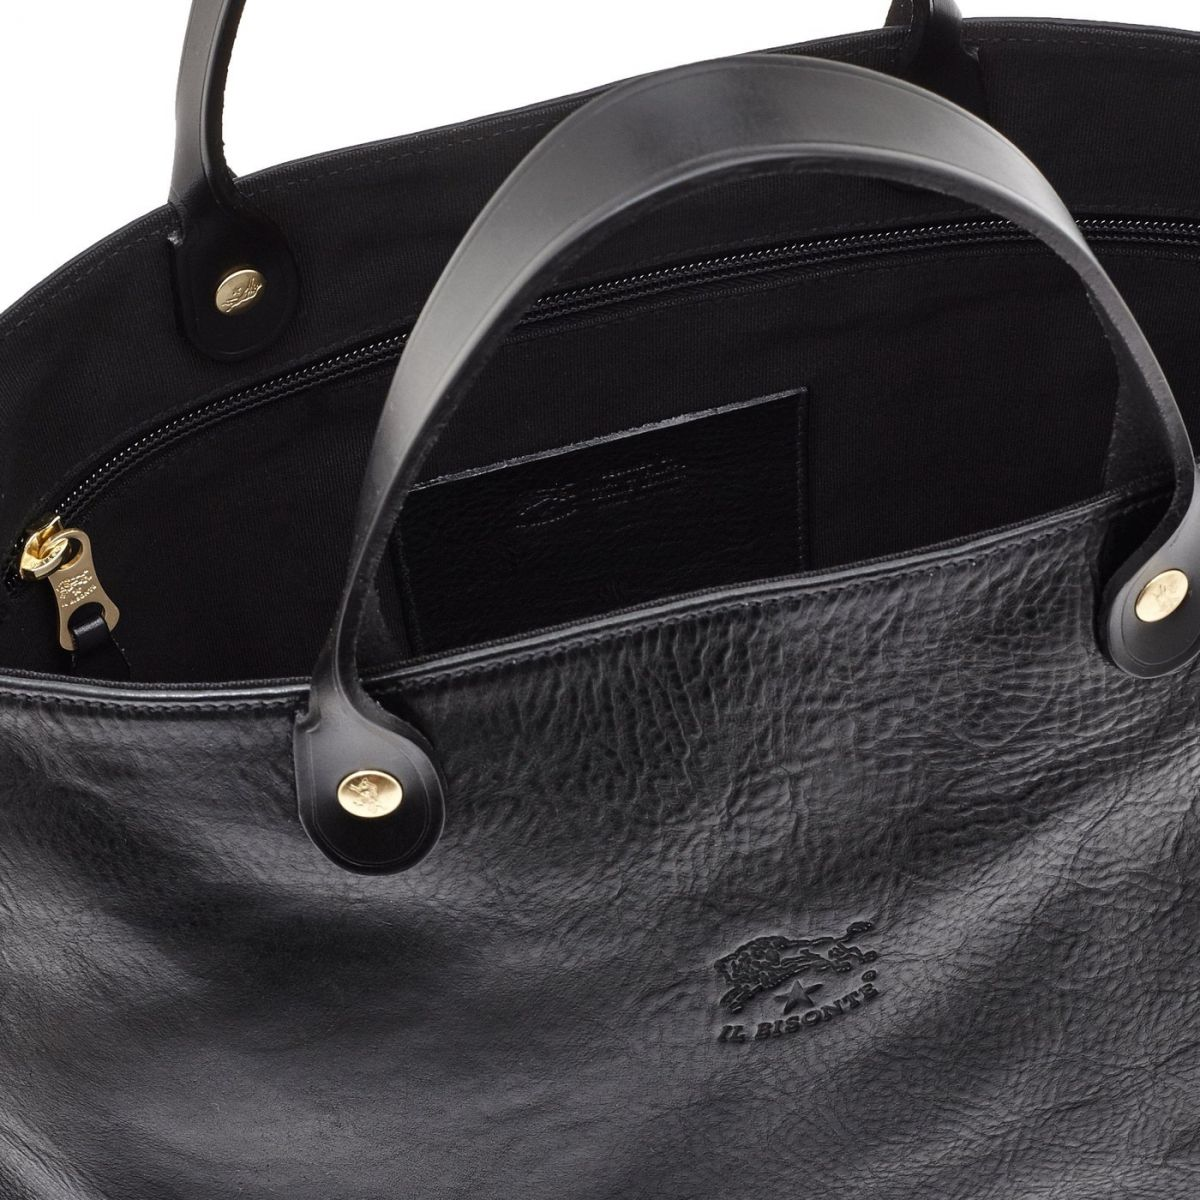 Women's Handbag in Cowhide Double Leather BTH022 color Black | Details